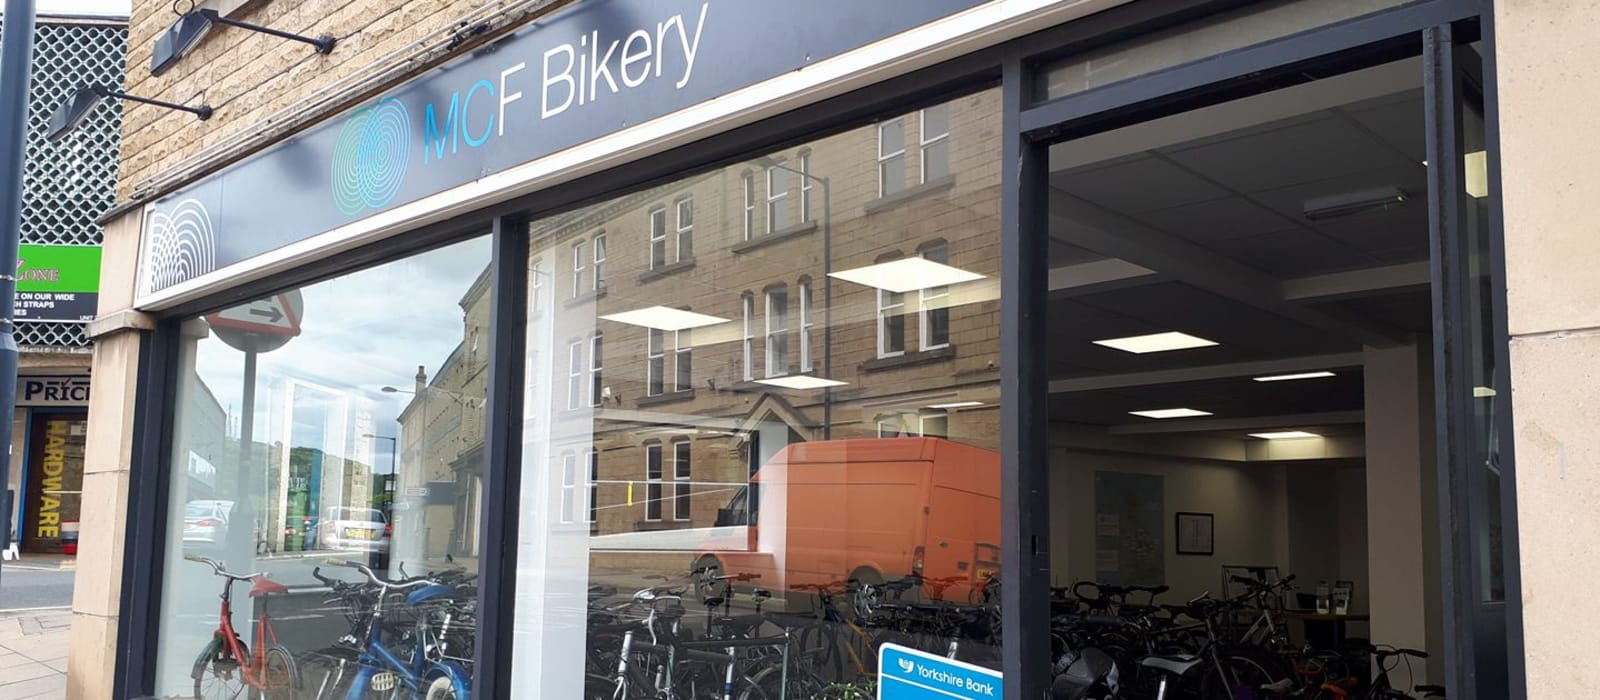 The MCF Bikery at Shipley